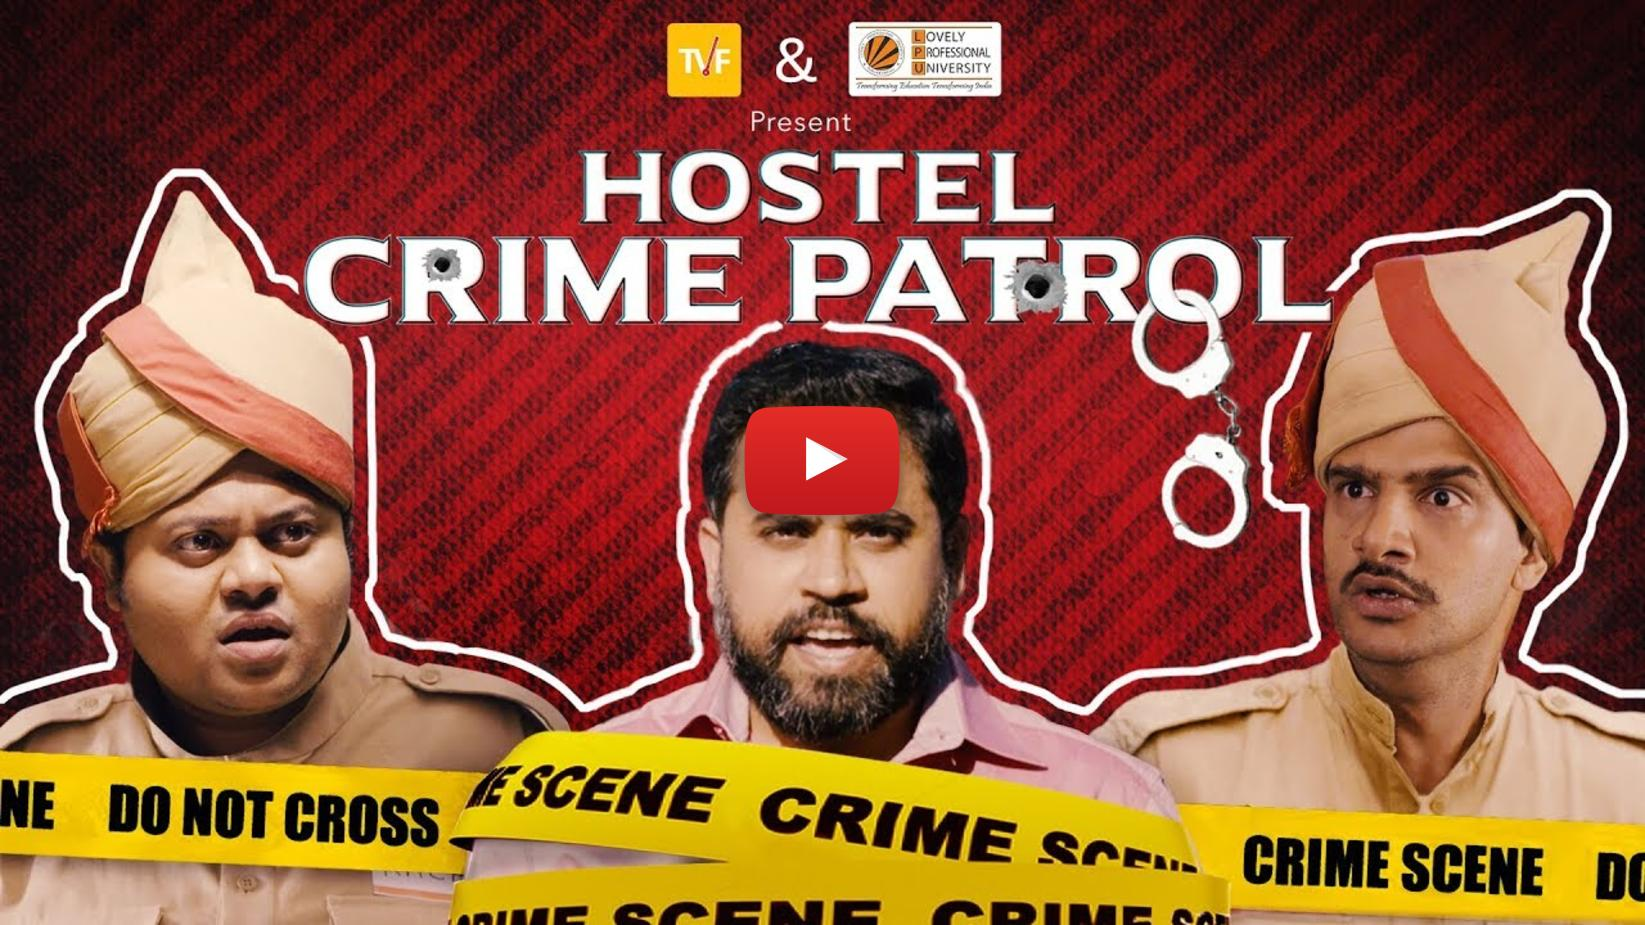 TVF - Hostel Crime Patrol - The Case Of Empty Plate